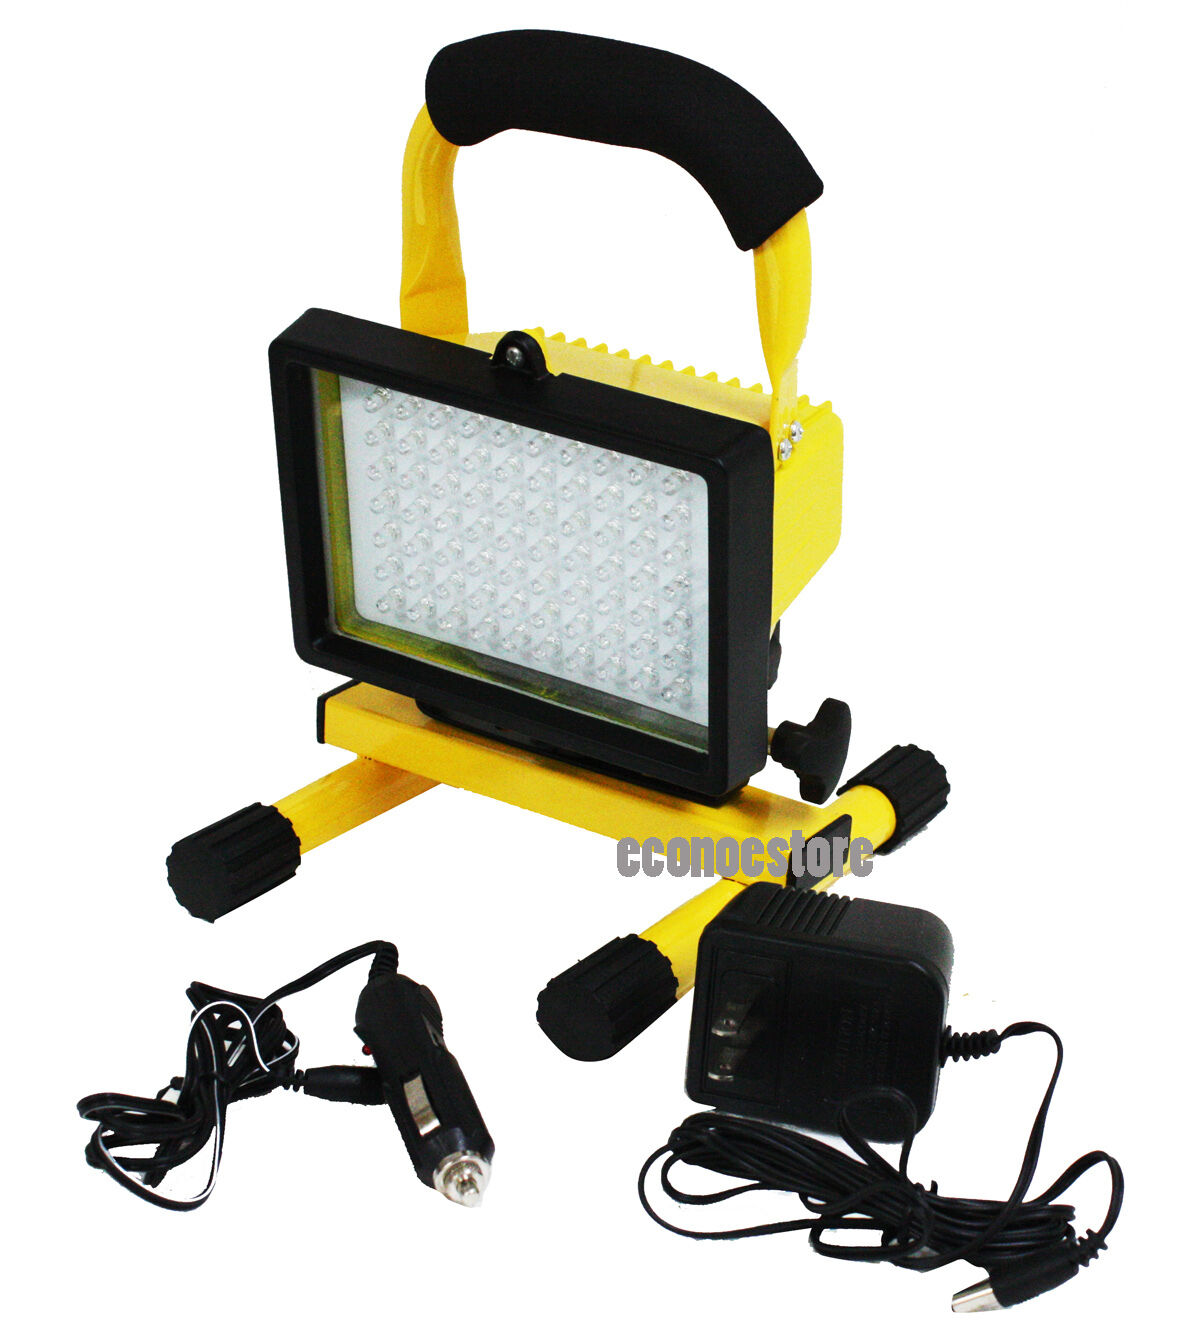 Led Work Light : Super bright led rechargeable cordless worklight